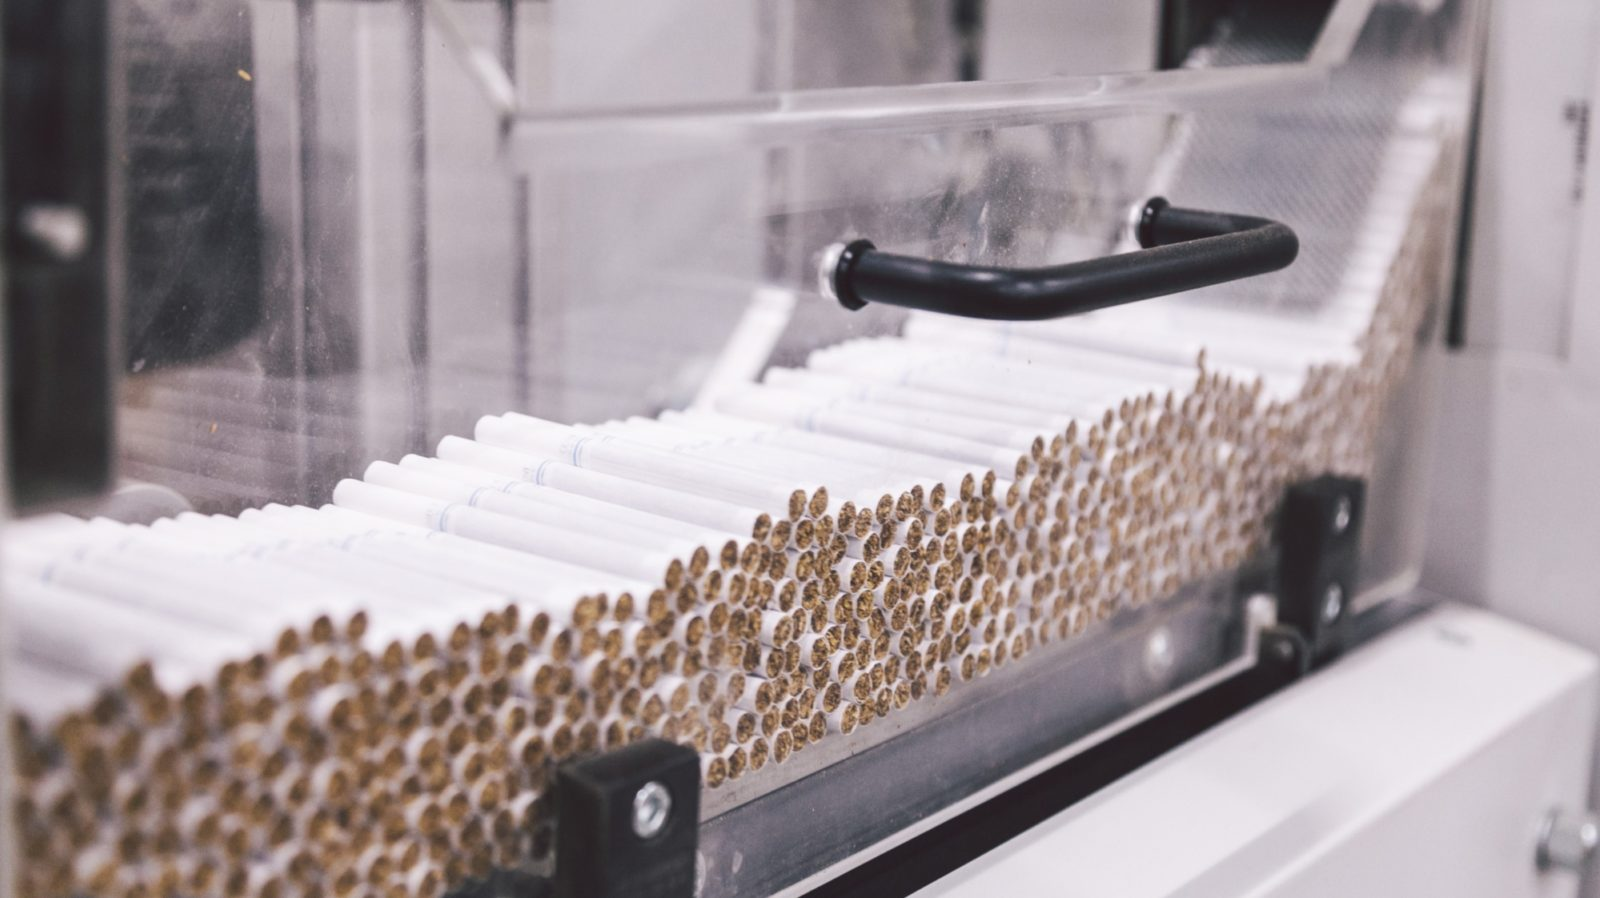 Cigarette Processing Line Cropped